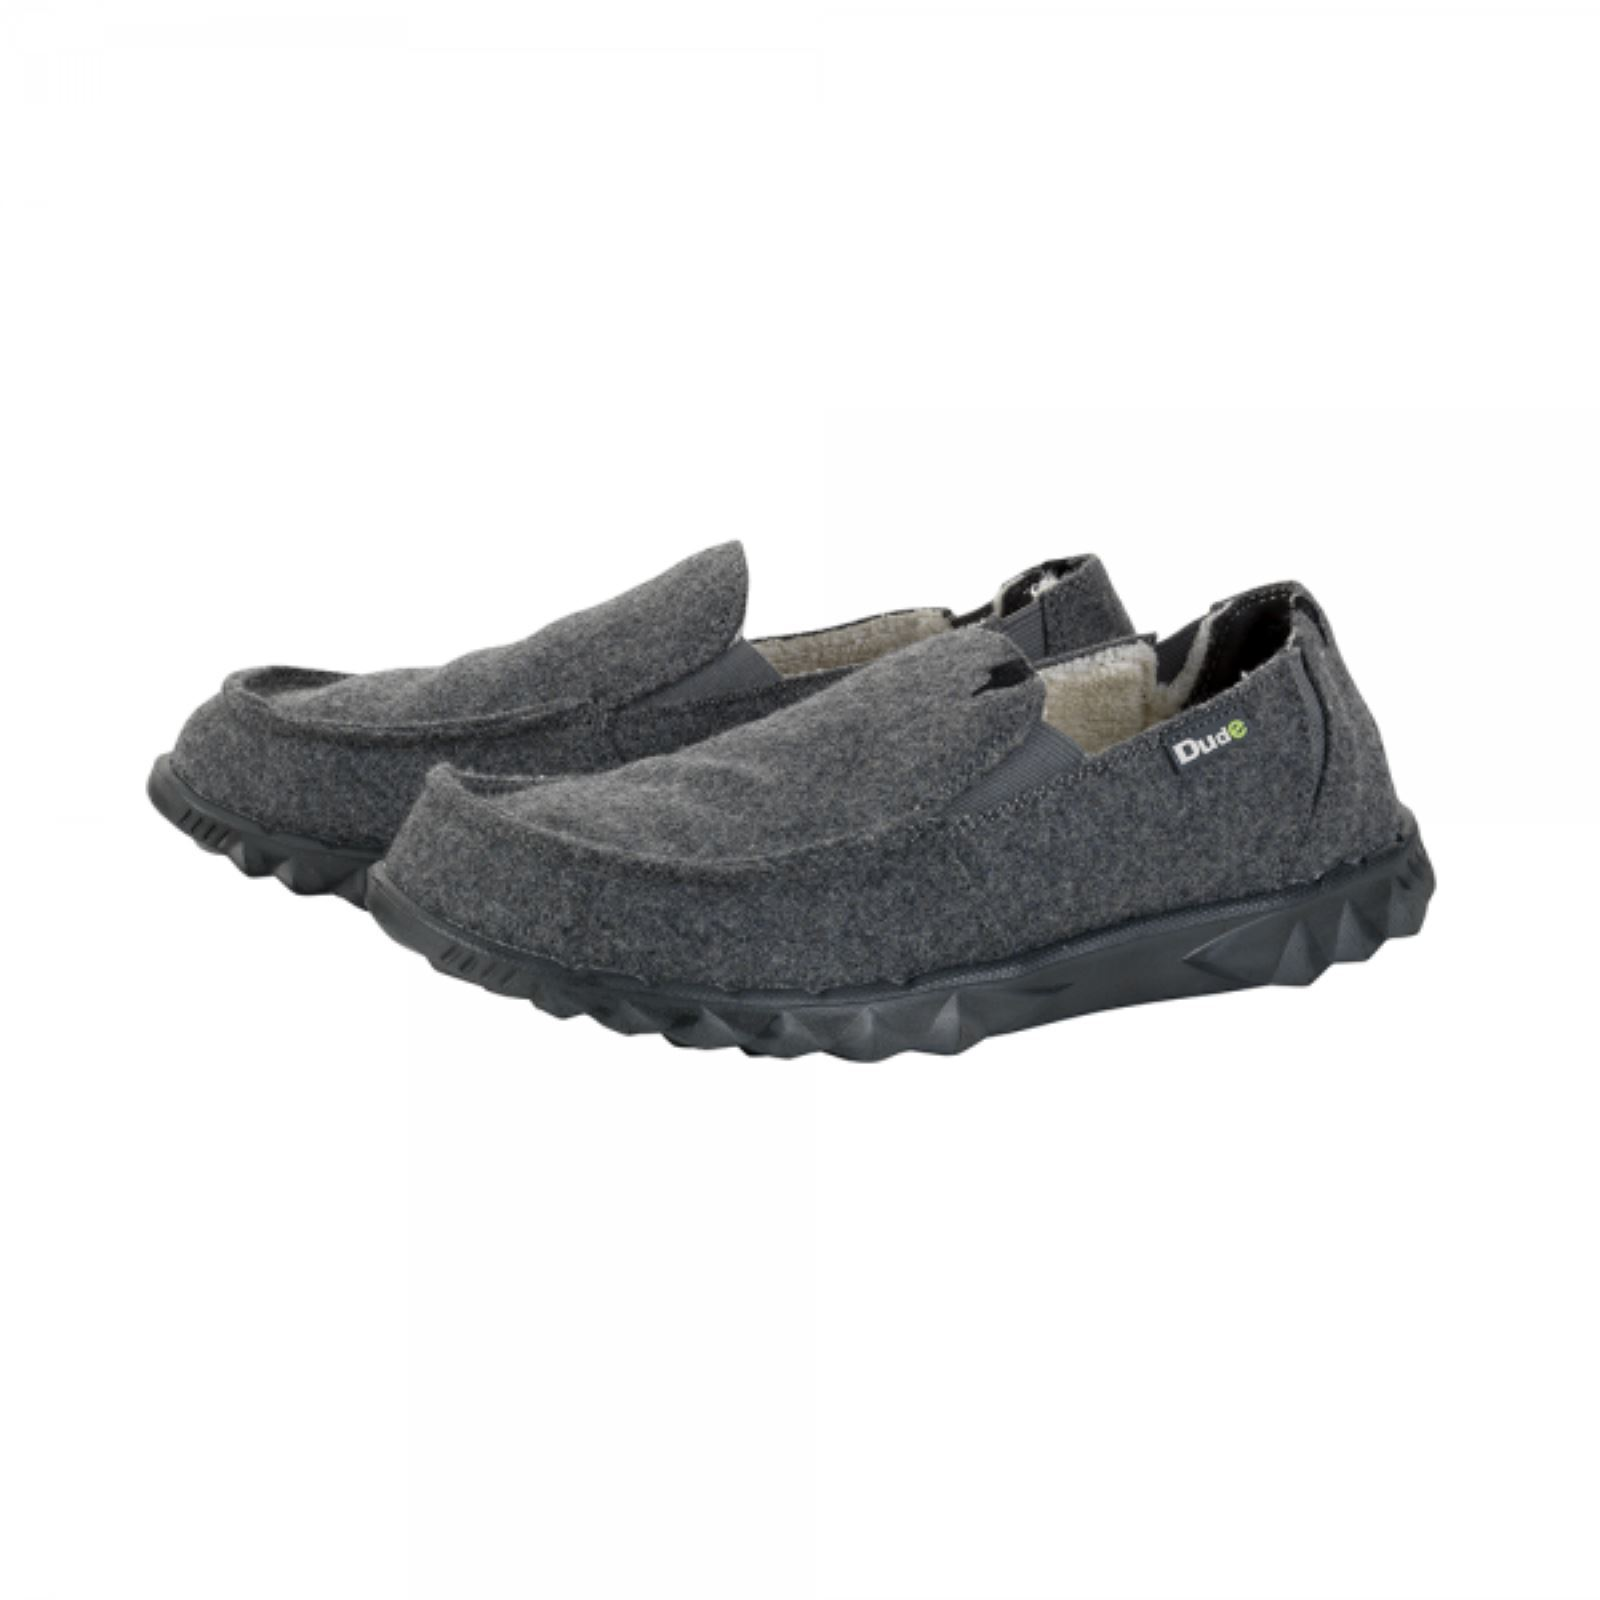 Hey Dude Slip Chalet On Hombre Zapatos Farty Chalet Slip Gris Felt Leather Insole e0fc40